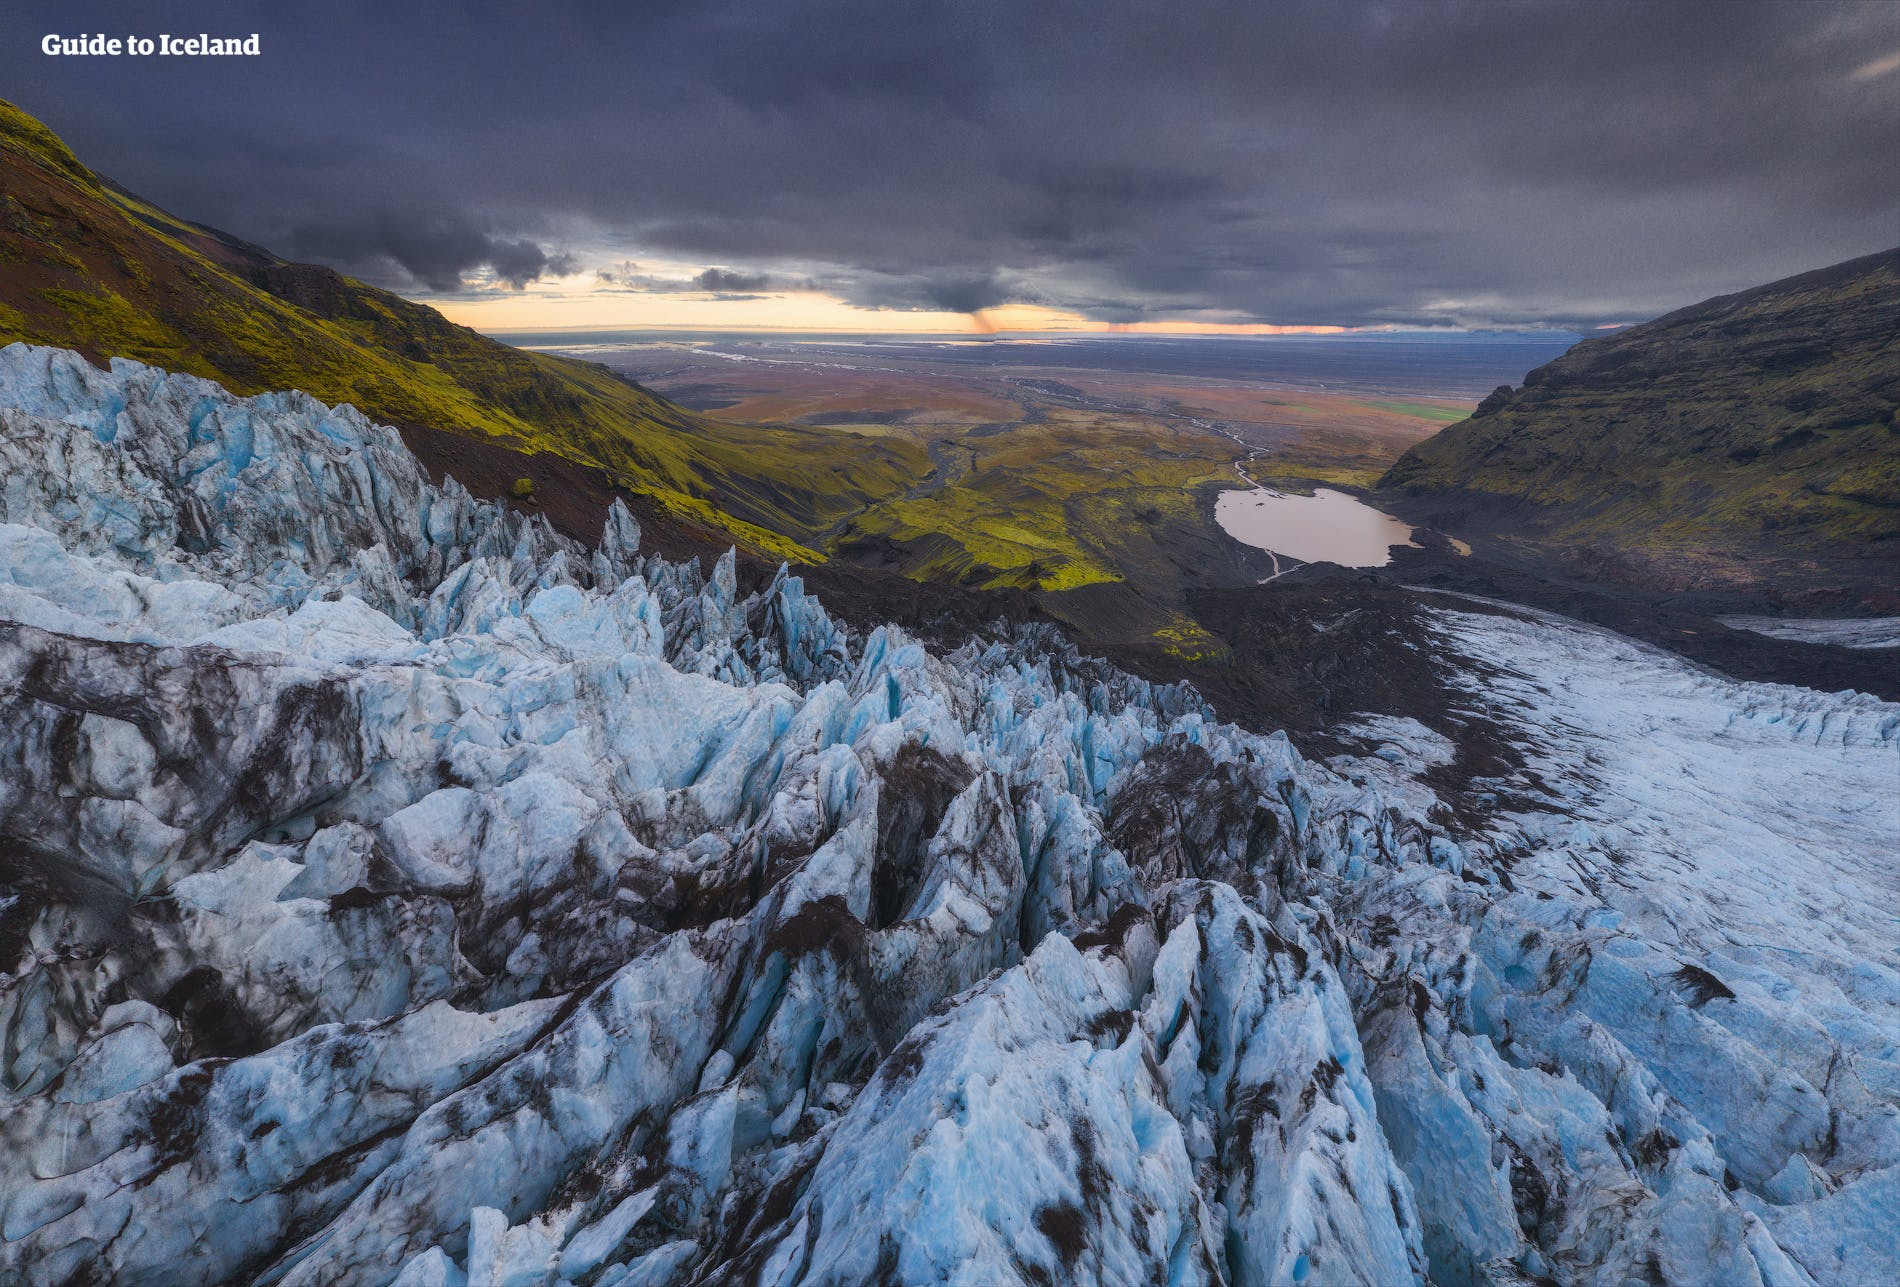 Svínafellsjökull_Glacier_Southeast_Summer_Watermarked_September 2018.jpg